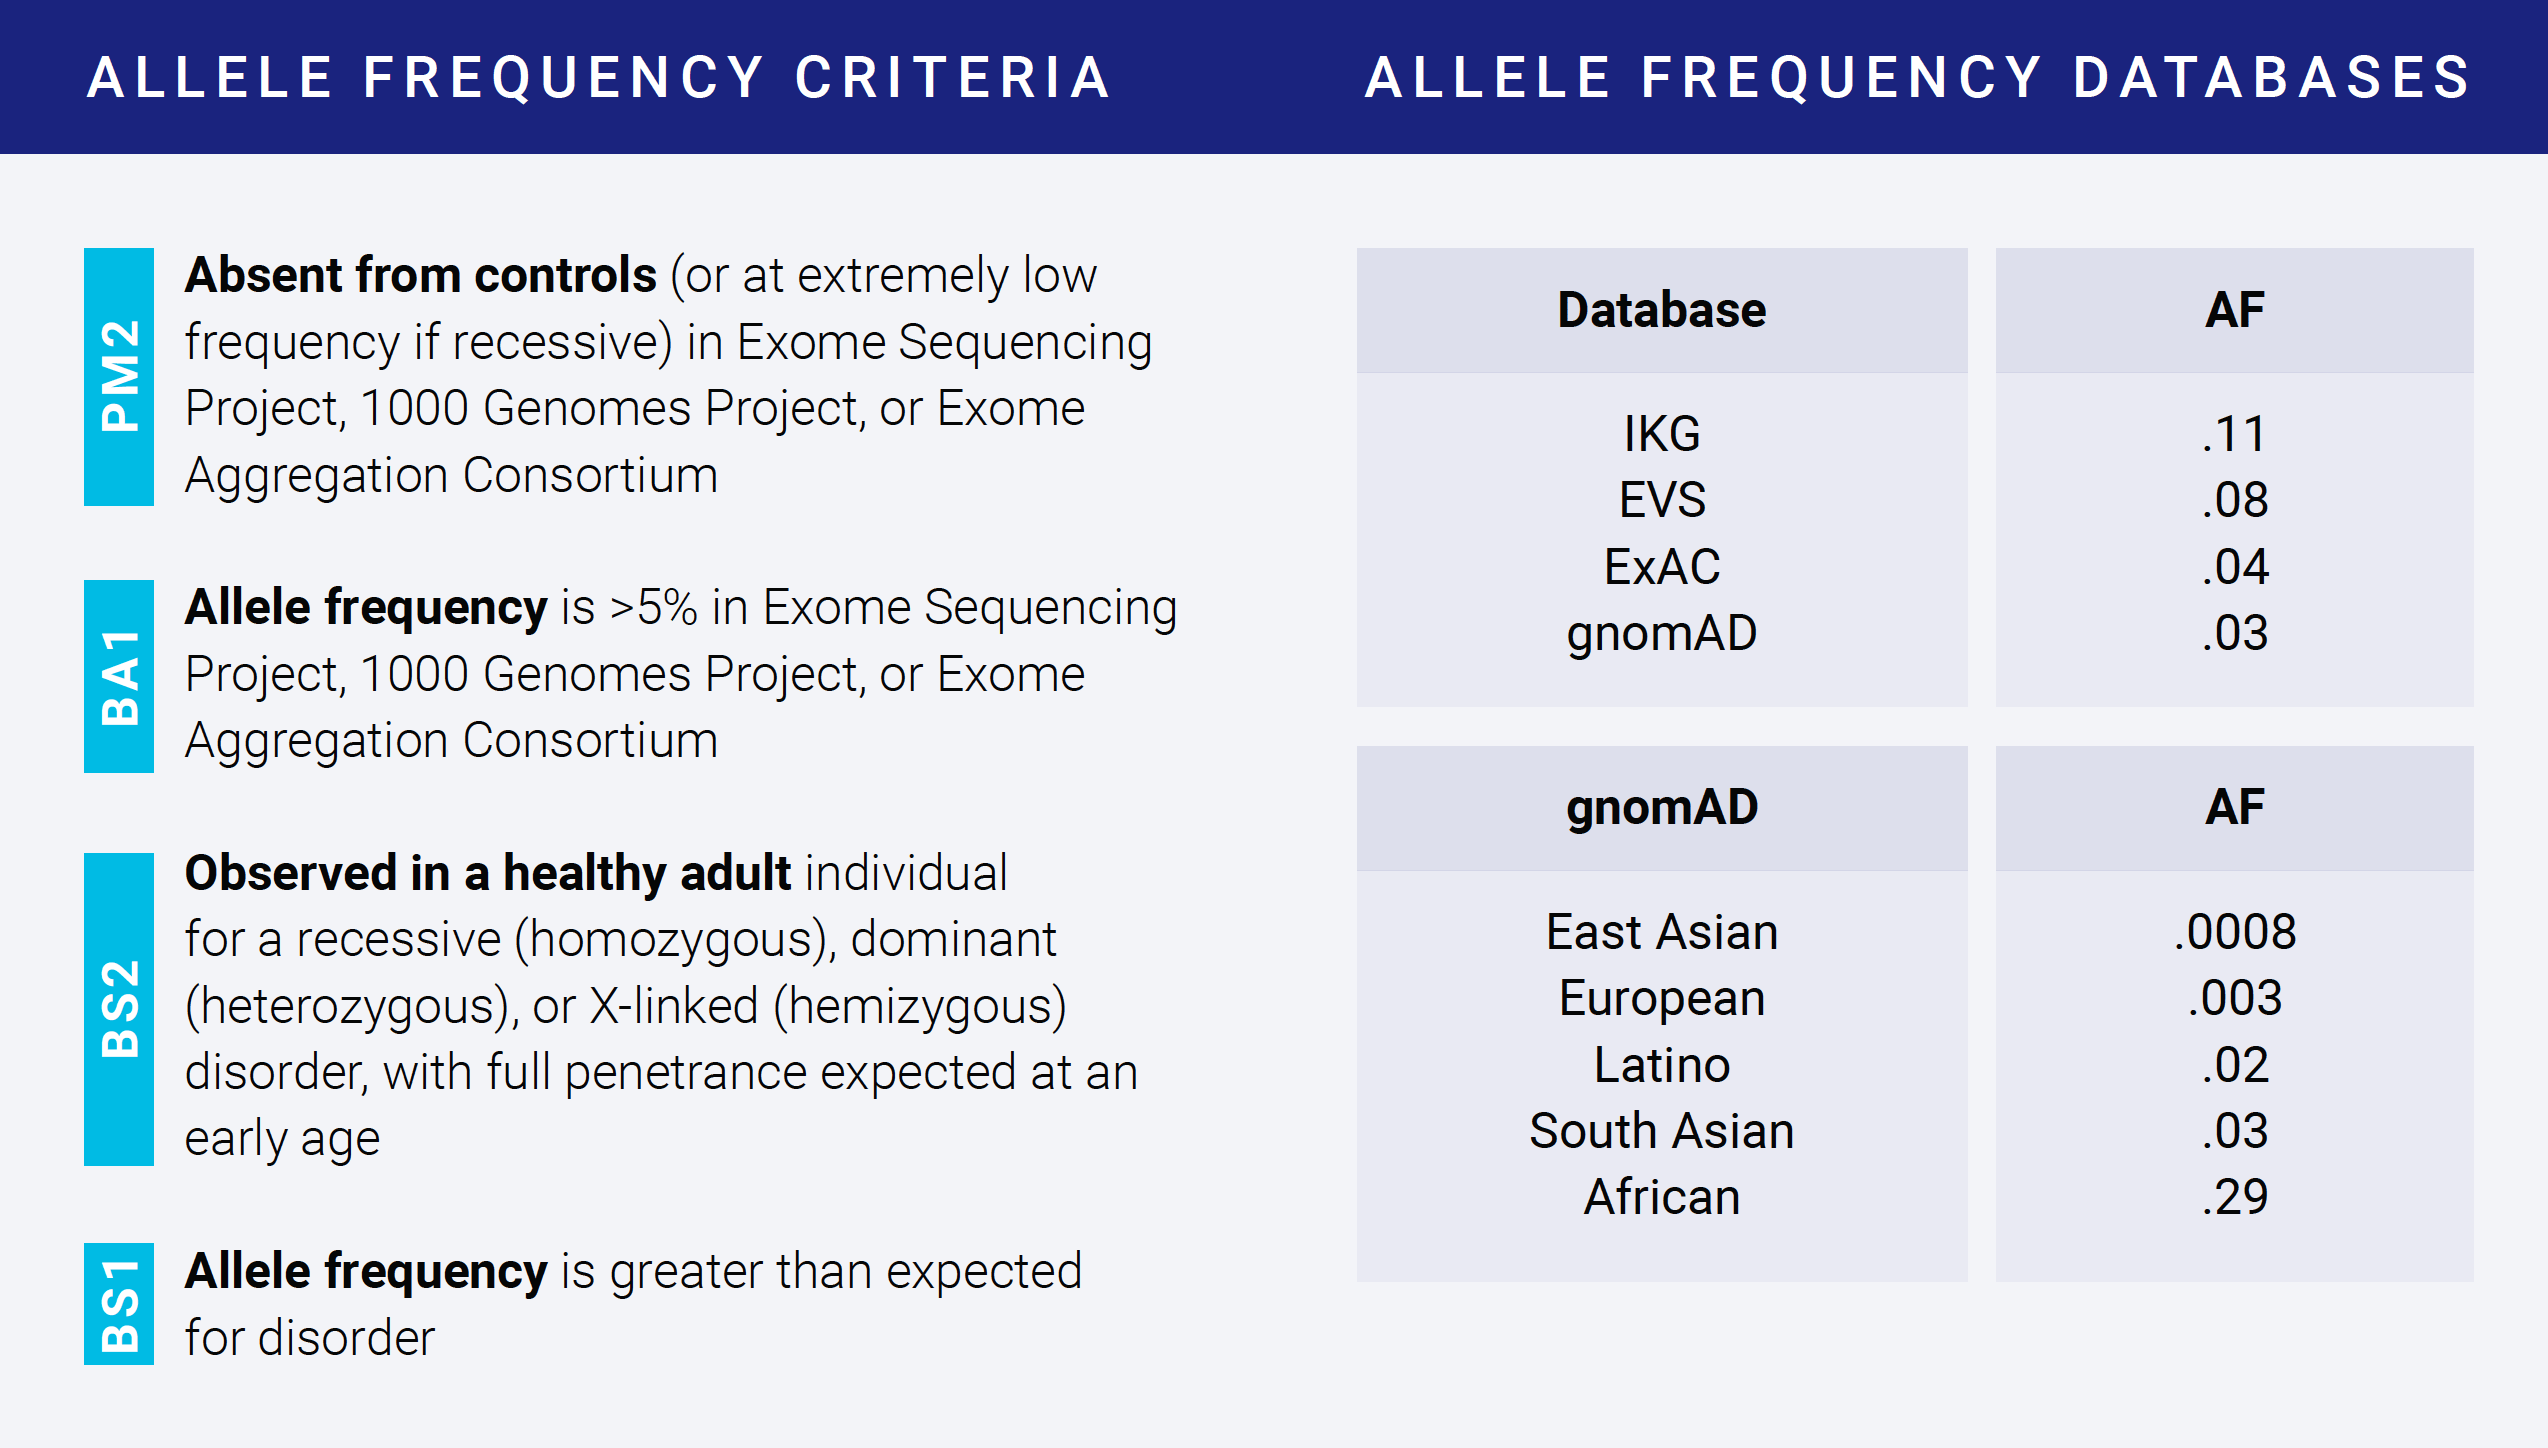 Allele frequency criteria and databases